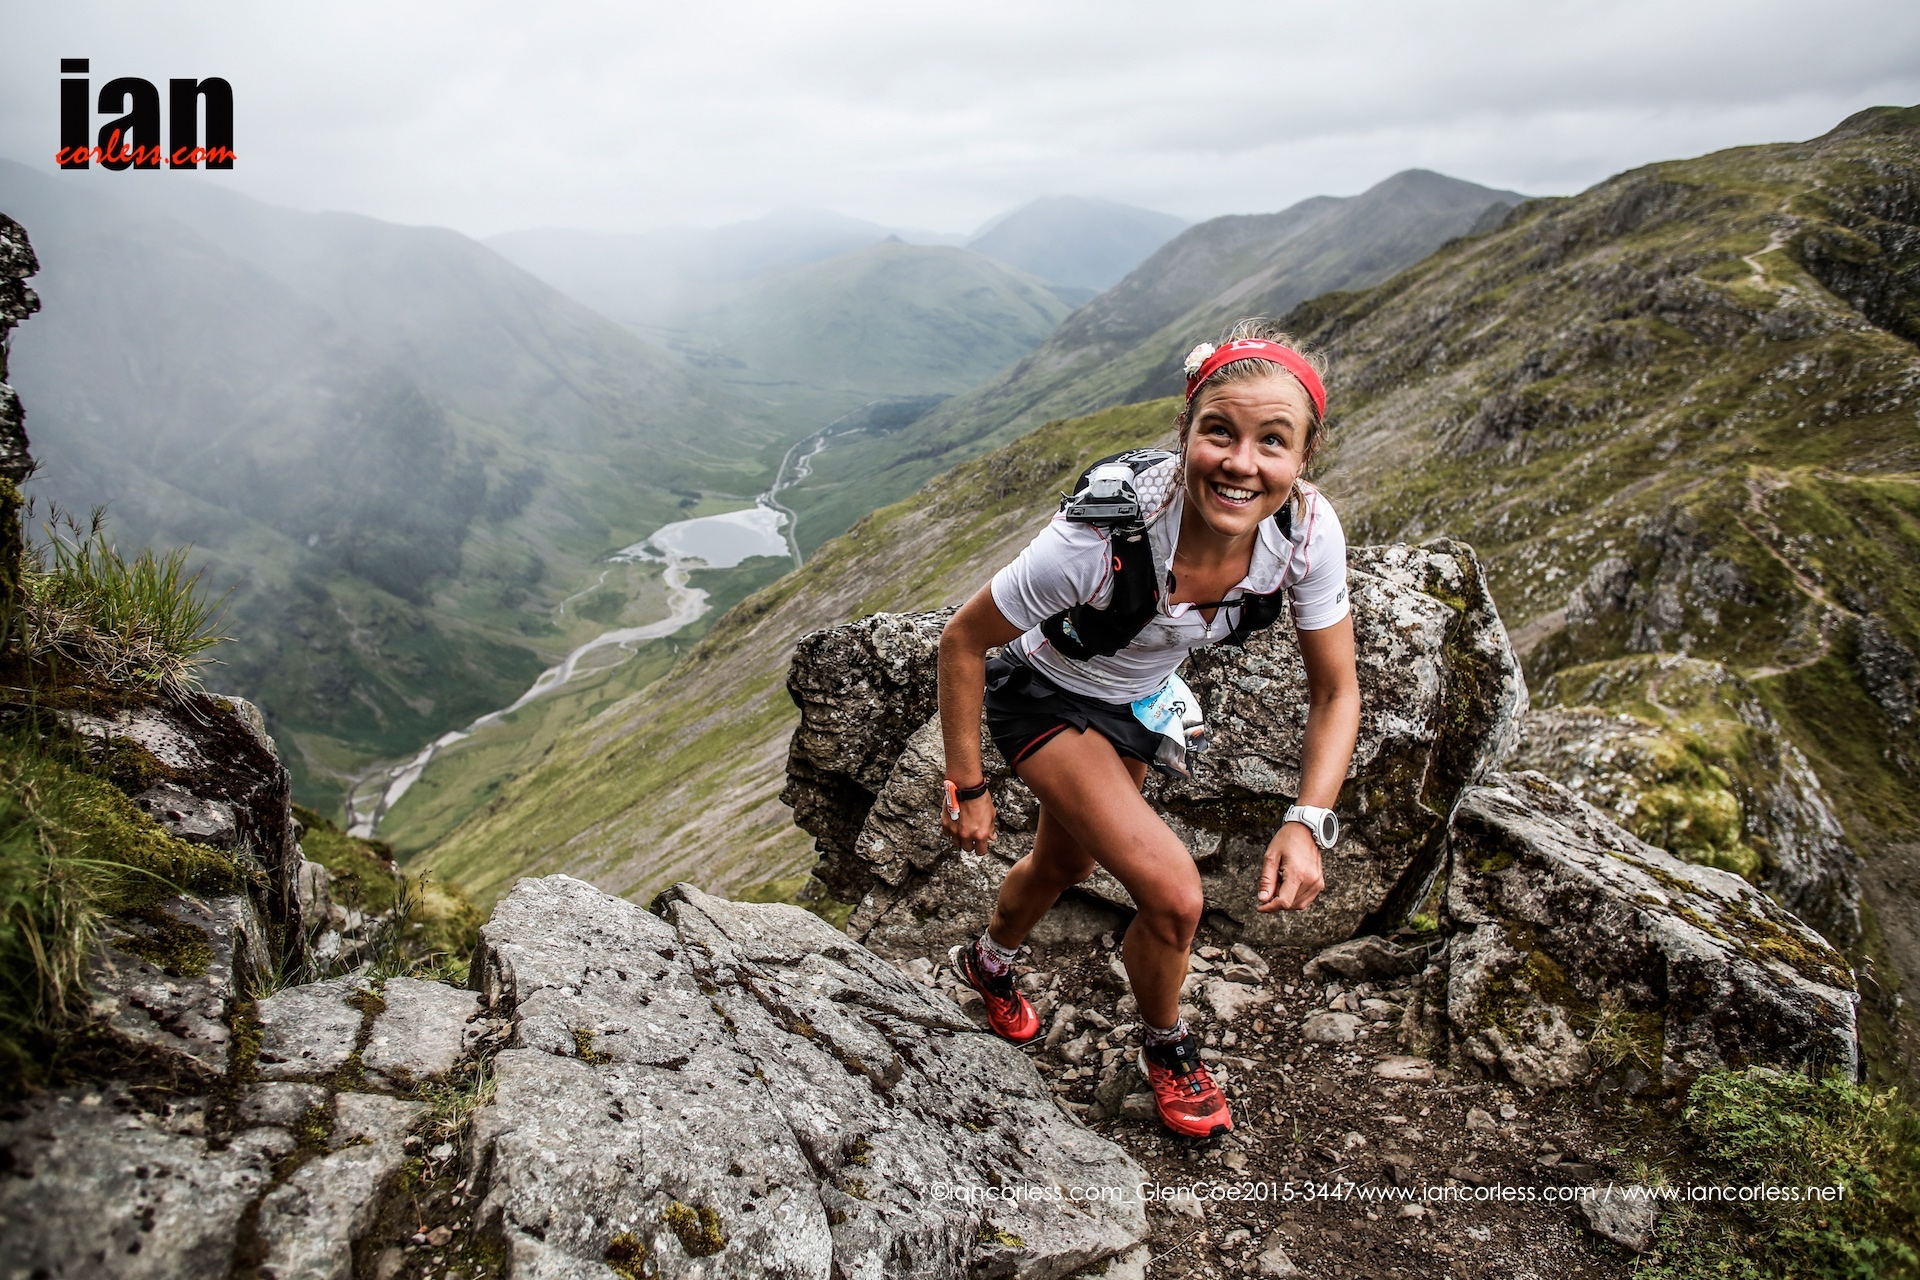 Emelie Forsberg na Salomon Glen Coe Skyline Race 2015. Fot. Ian Coreless